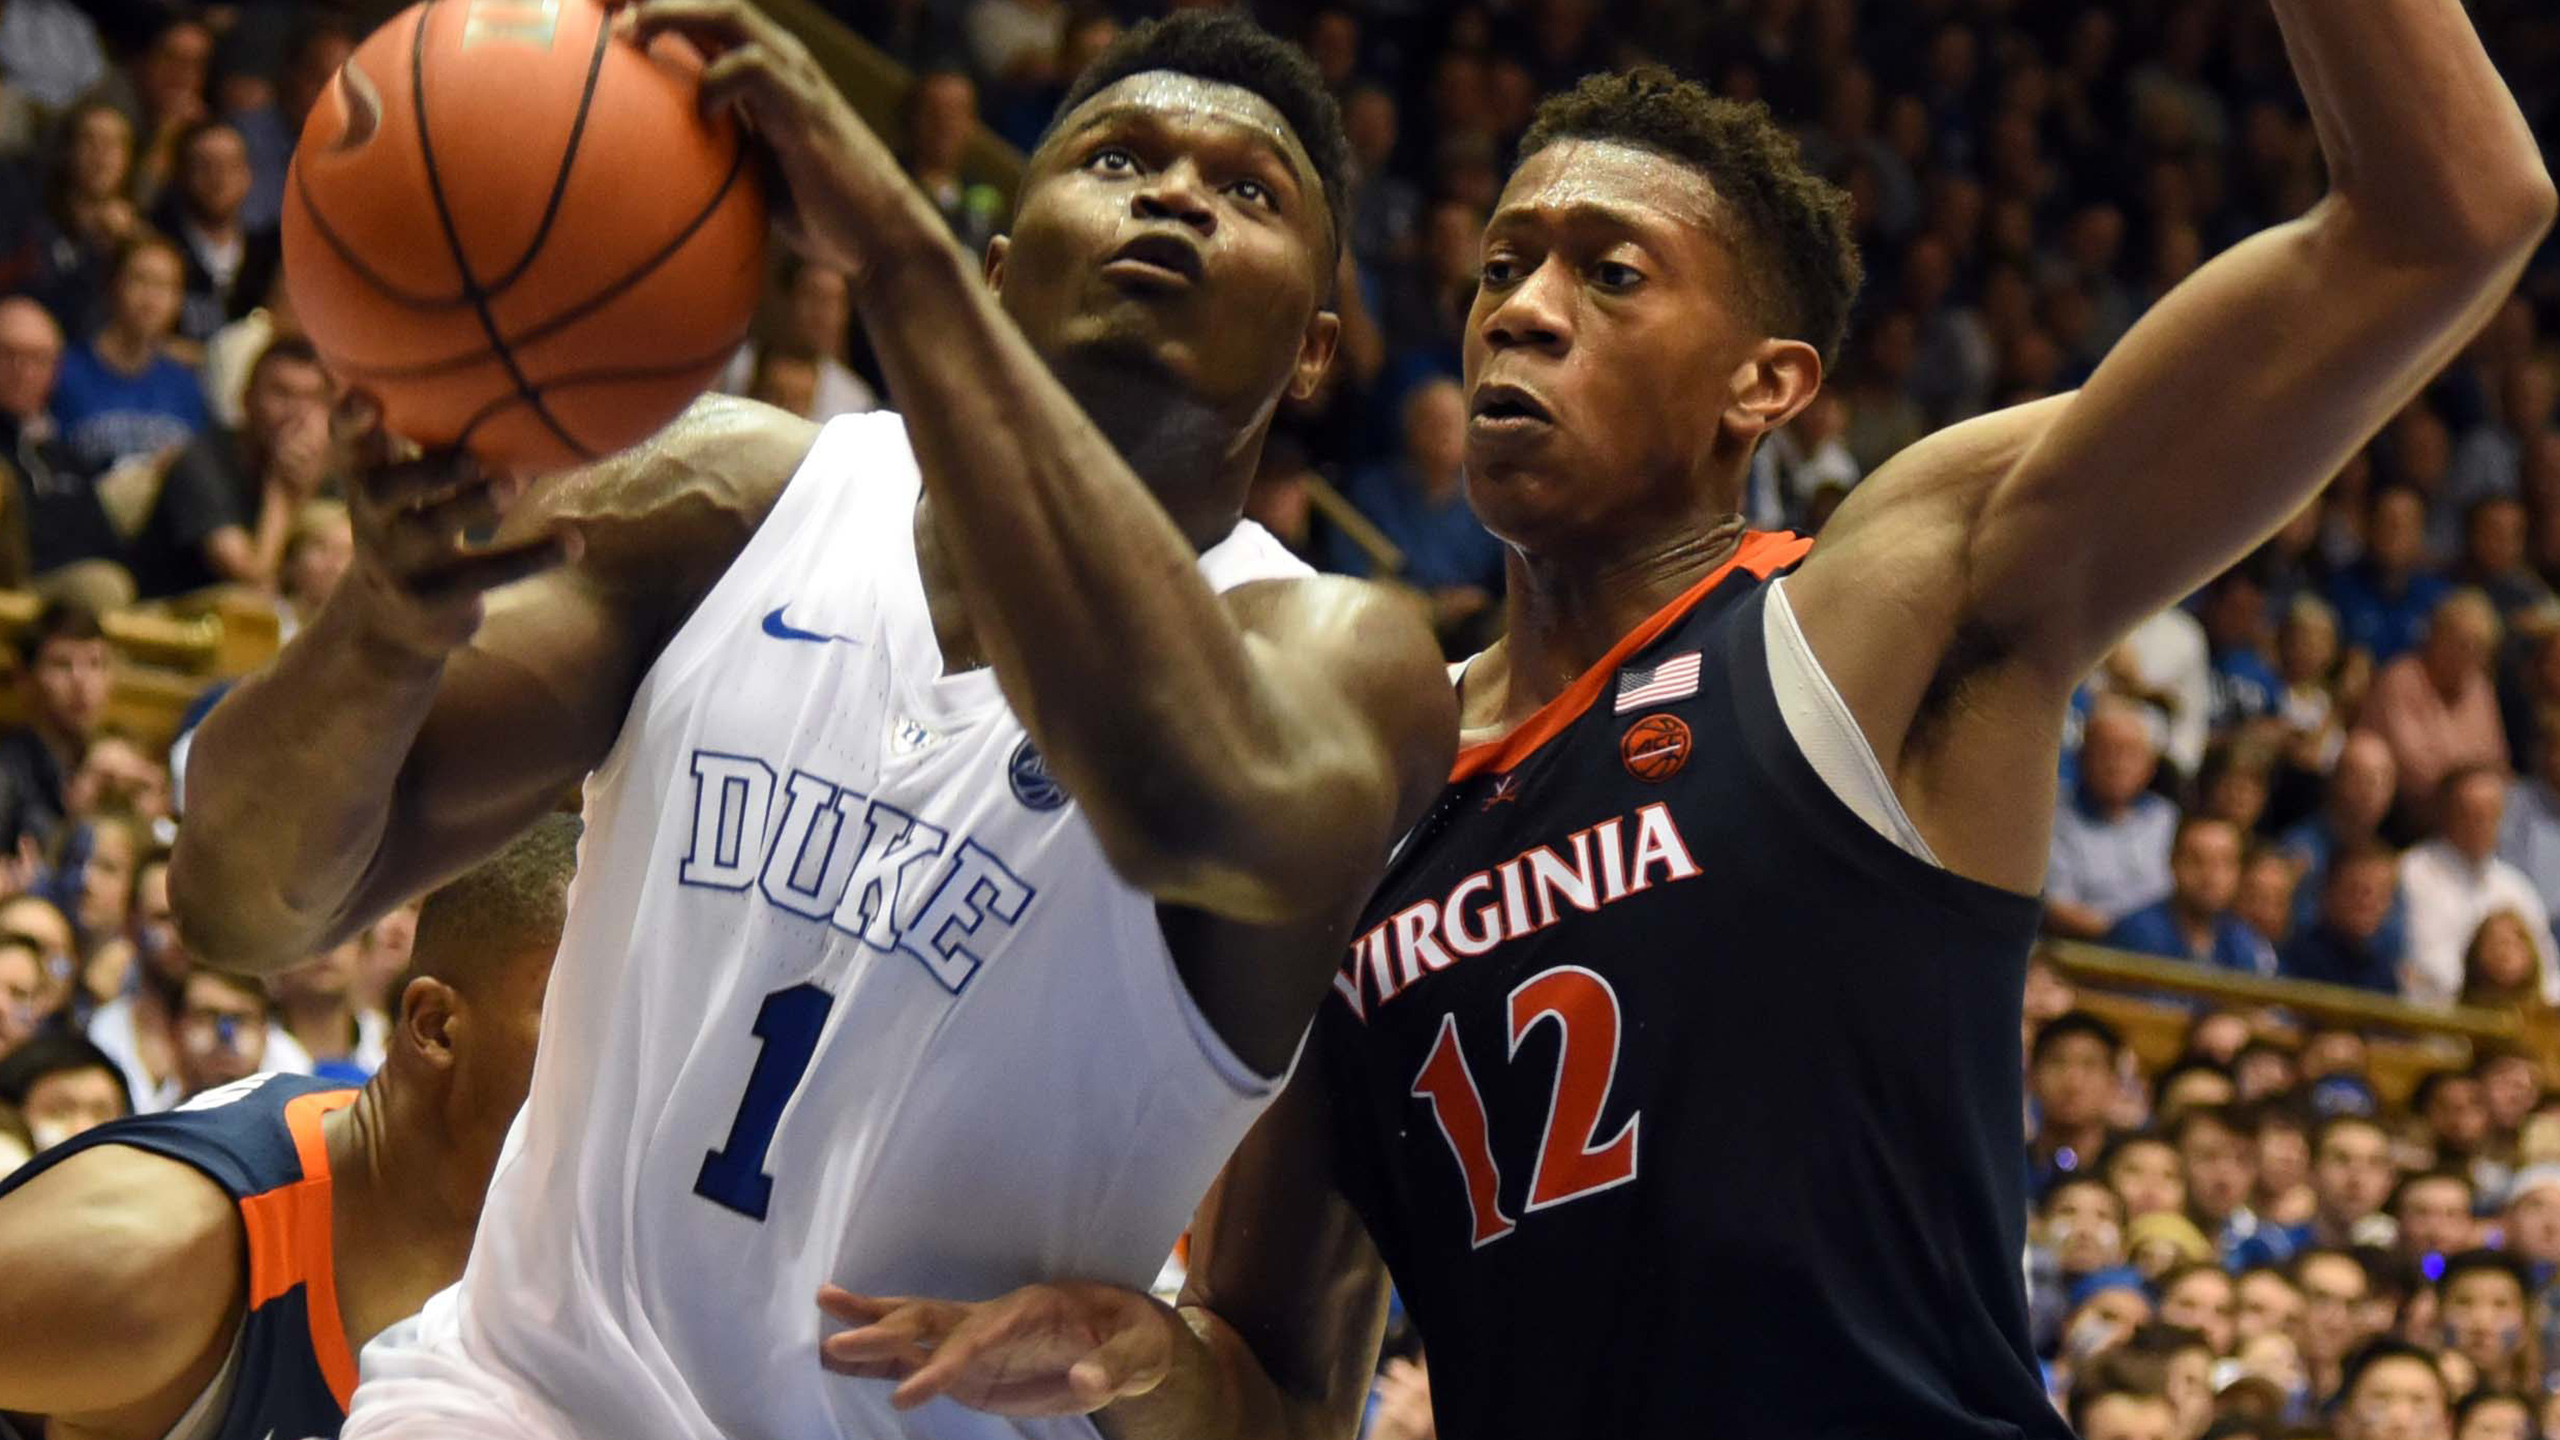 #4 Virginia vs. #1 Duke (M Basketball)